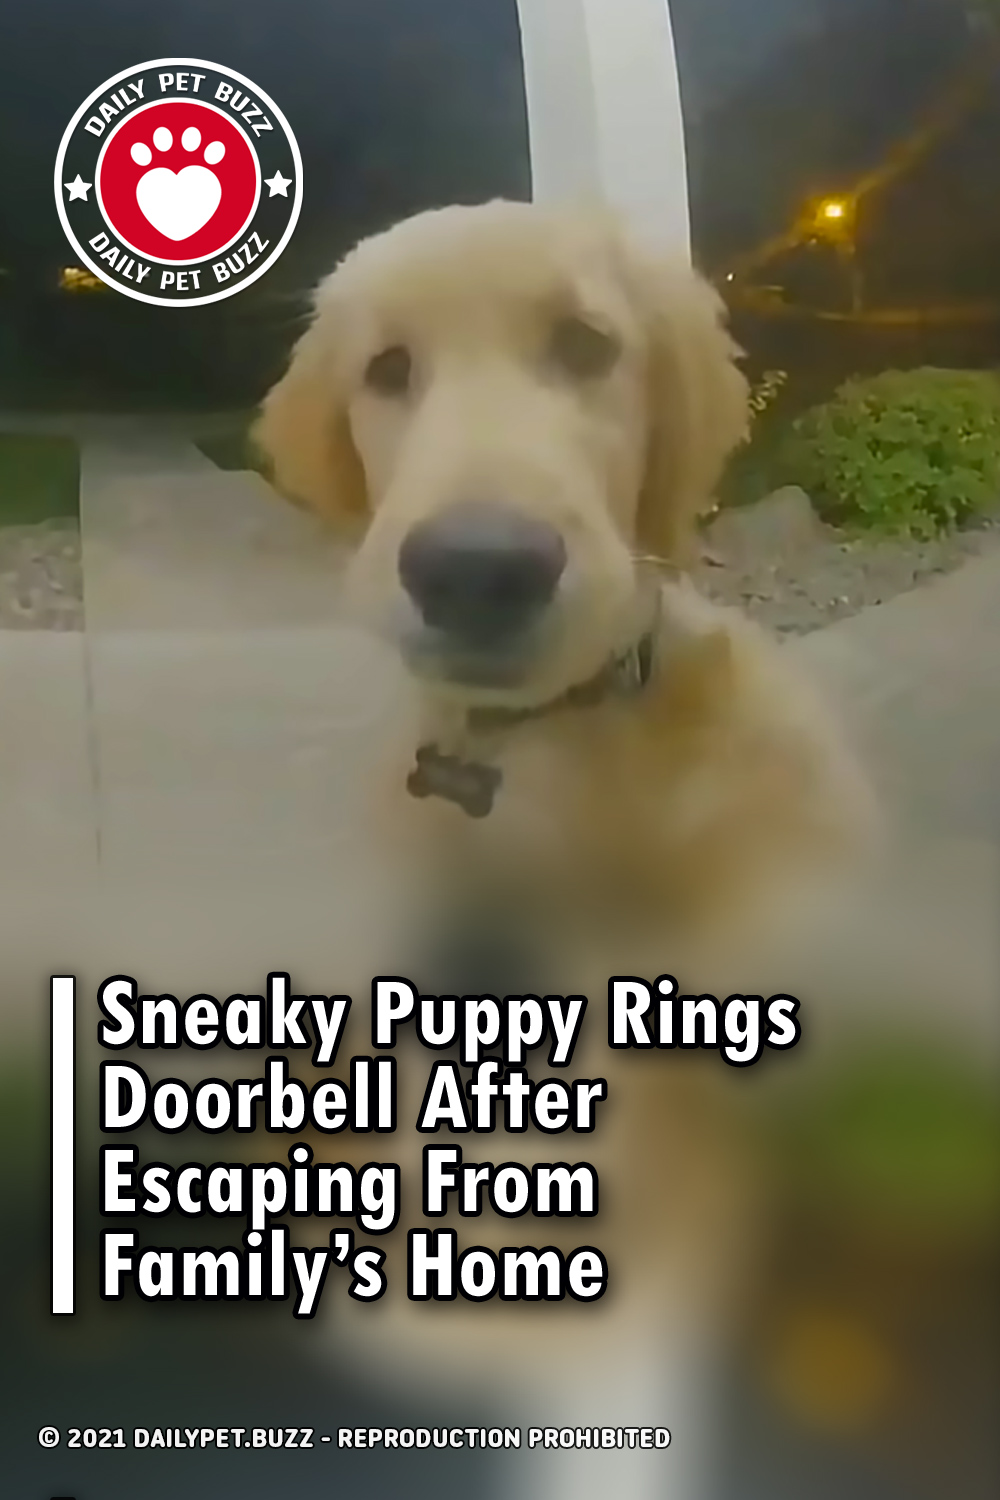 Sneaky Puppy Rings Doorbell After Escaping From Family's Home